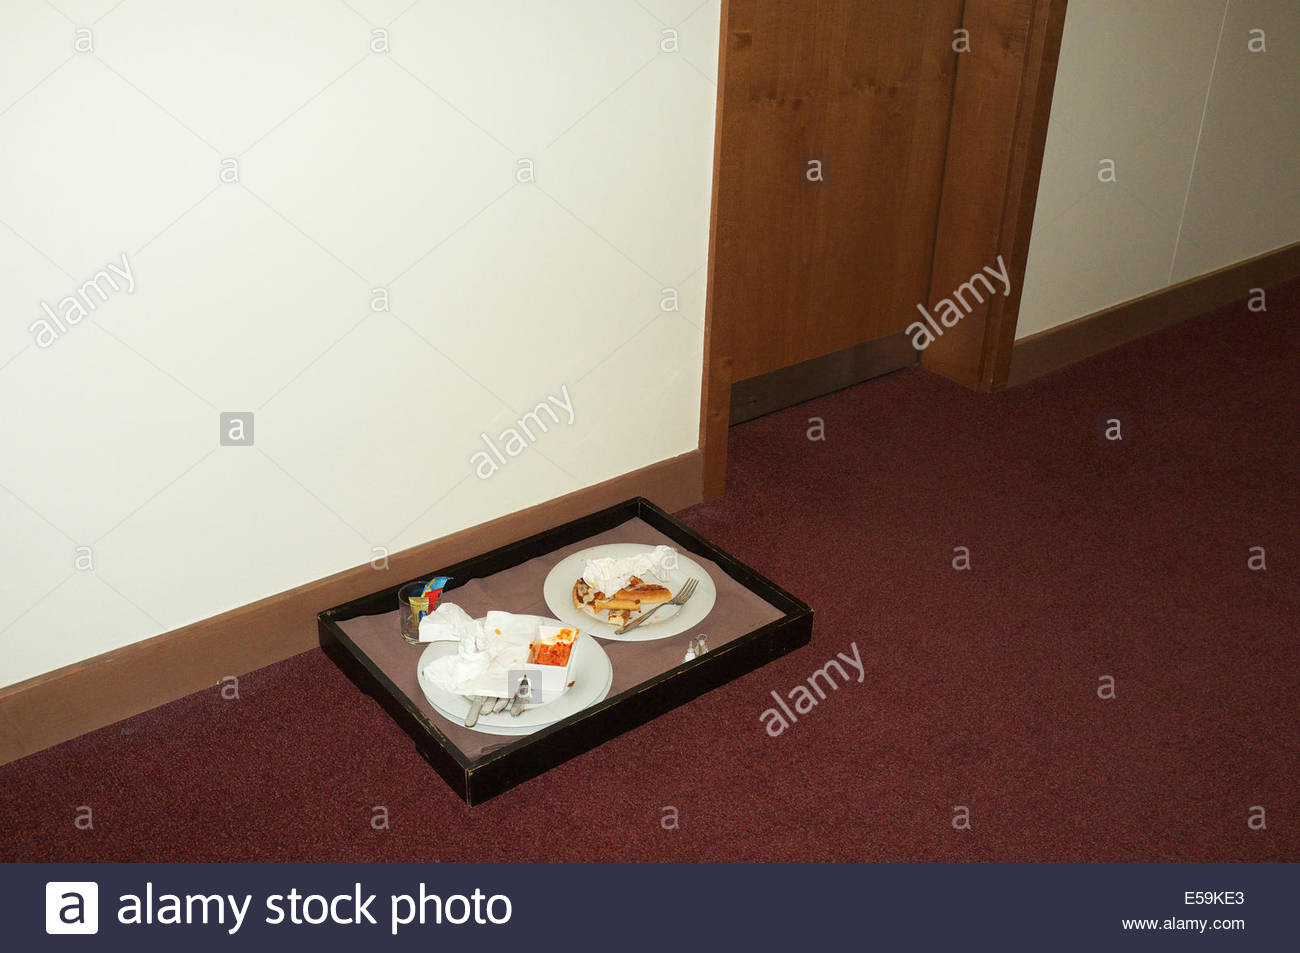 A tray with plates that have left over food on, in the corridor outside a hotel room in Budapest, Hungary. - Stock Image